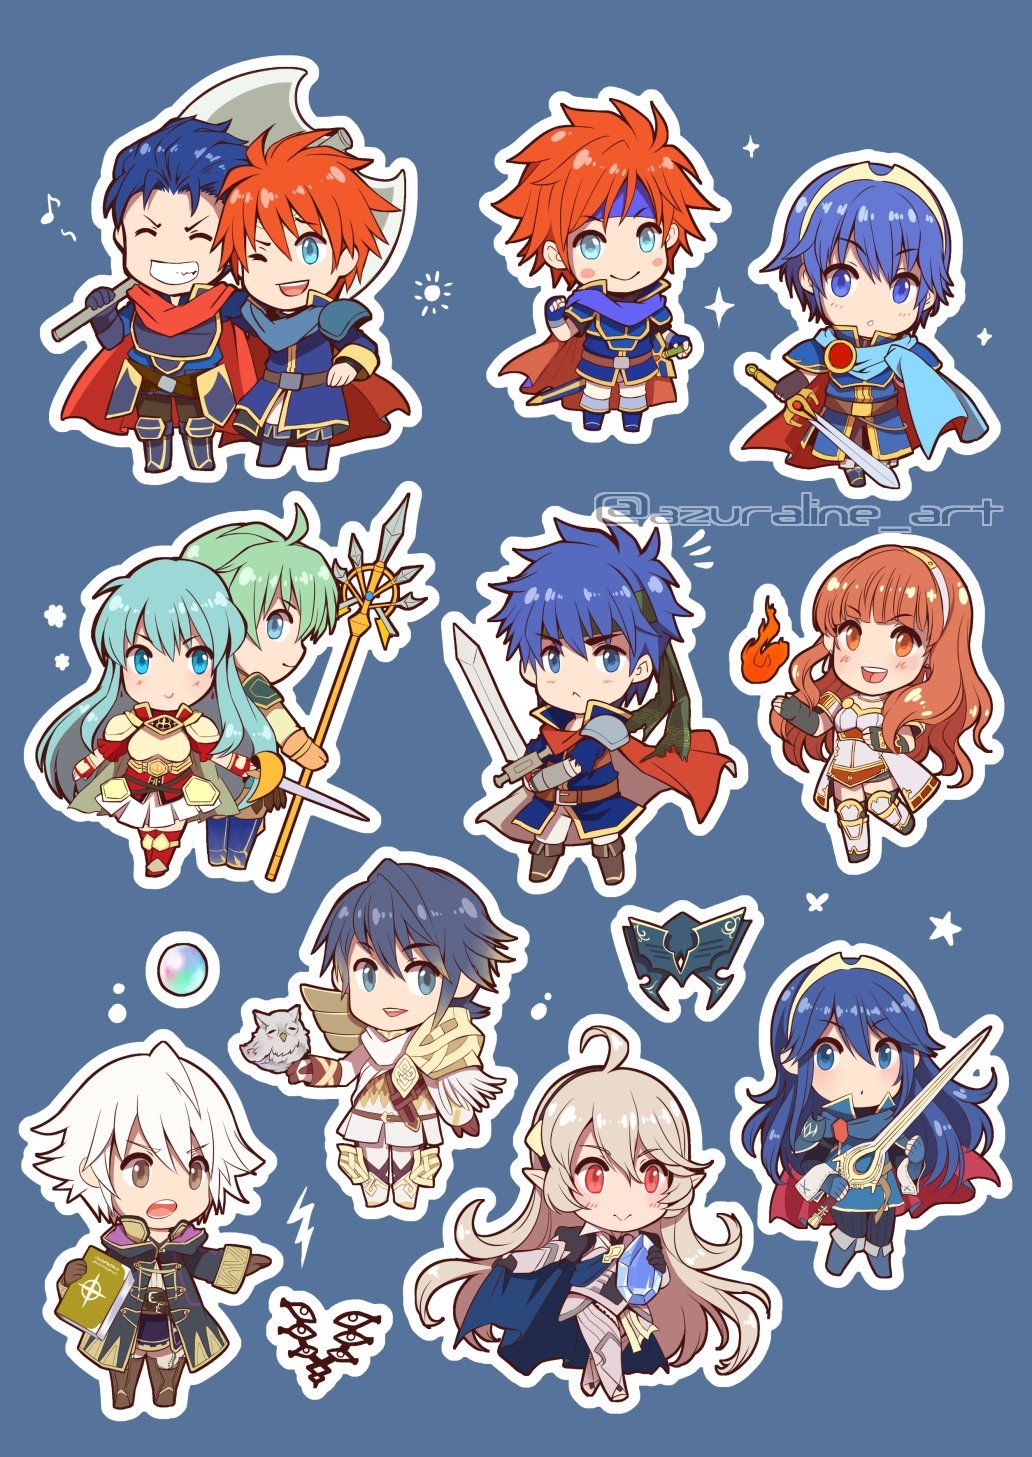 alfonse_(fire_emblem) aqua_hair armor artist_request axe barefoot bird blue_cape blue_eyes blue_hair brother_and_sister cape celica_(fire_emblem) closed_eyes dress earrings eirika eliwood_(fire_emblem) ephraim falchion_(fire_emblem) feh_(fire_emblem_heroes) female_my_unit_(fire_emblem_if) fingerless_gloves fire_emblem fire_emblem:_fuuin_no_tsurugi fire_emblem:_kakusei fire_emblem:_monshou_no_nazo fire_emblem:_rekka_no_ken fire_emblem:_seima_no_kouseki fire_emblem:_souen_no_kiseki fire_emblem_echoes:_mou_hitori_no_eiyuuou fire_emblem_heroes fire_emblem_if gloves green_hair hair_between_eyes hair_ornament hairband headband hector_(fire_emblem) highres ike jewelry long_hair looking_at_viewer lucina male_my_unit_(fire_emblem:_kakusei) mamkute marth mask multiple_boys multiple_girls my_unit_(fire_emblem:_kakusei) my_unit_(fire_emblem_if) open_mouth owl pointy_ears red_eyes redhead roy_(fire_emblem) short_hair siblings silver_hair skirt smile sword thigh-highs tiara weapon